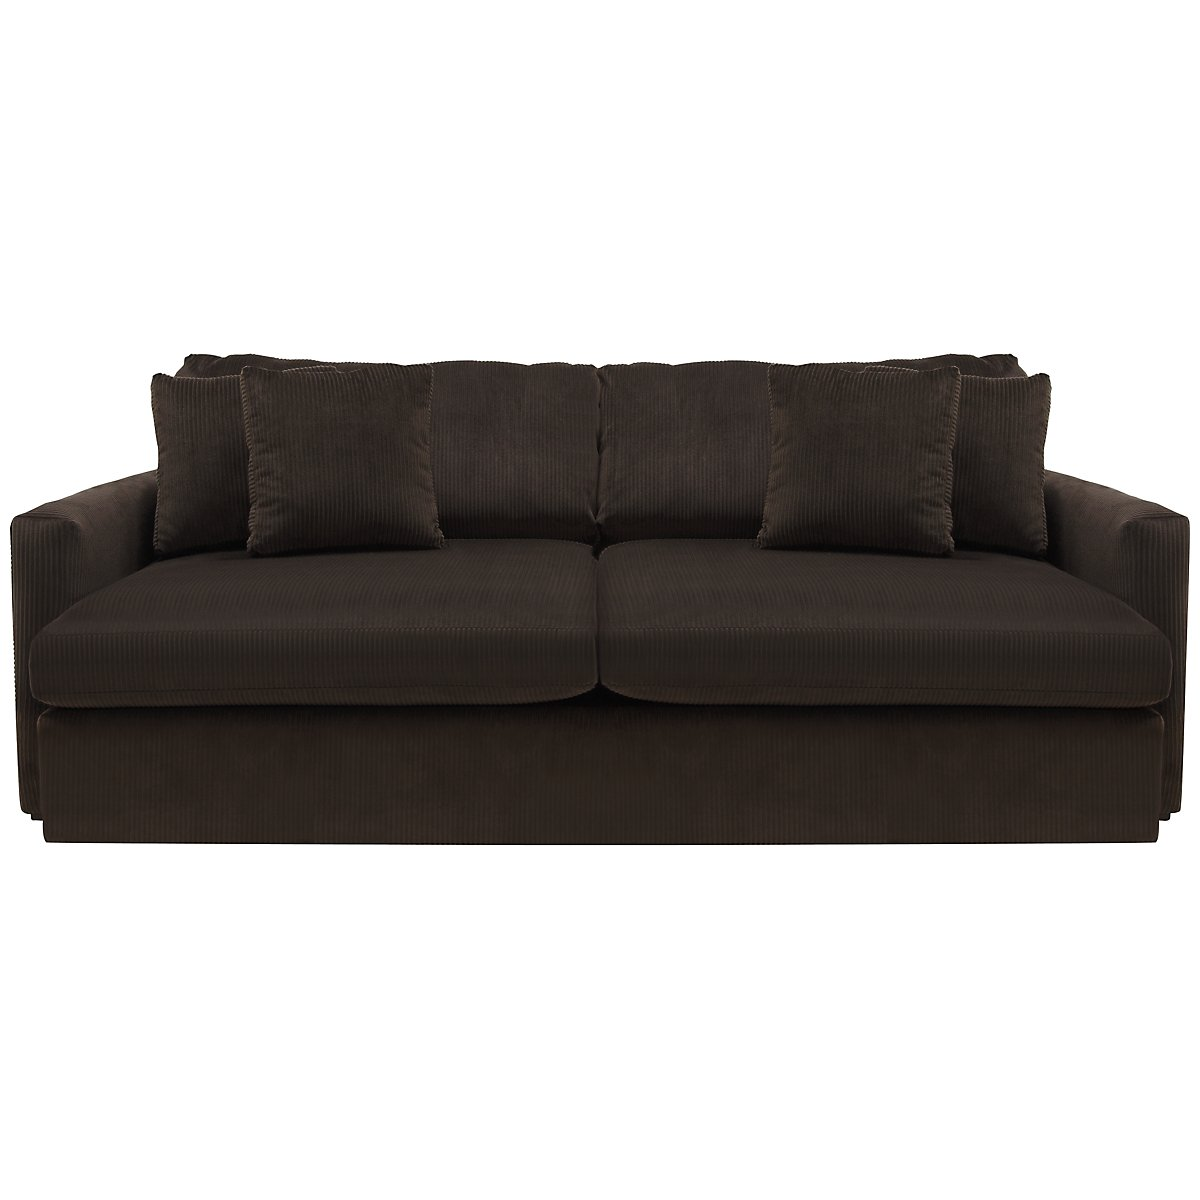 Dark brown microfiber sofa abson living monrovia sectional for Brown microfiber chaise lounge